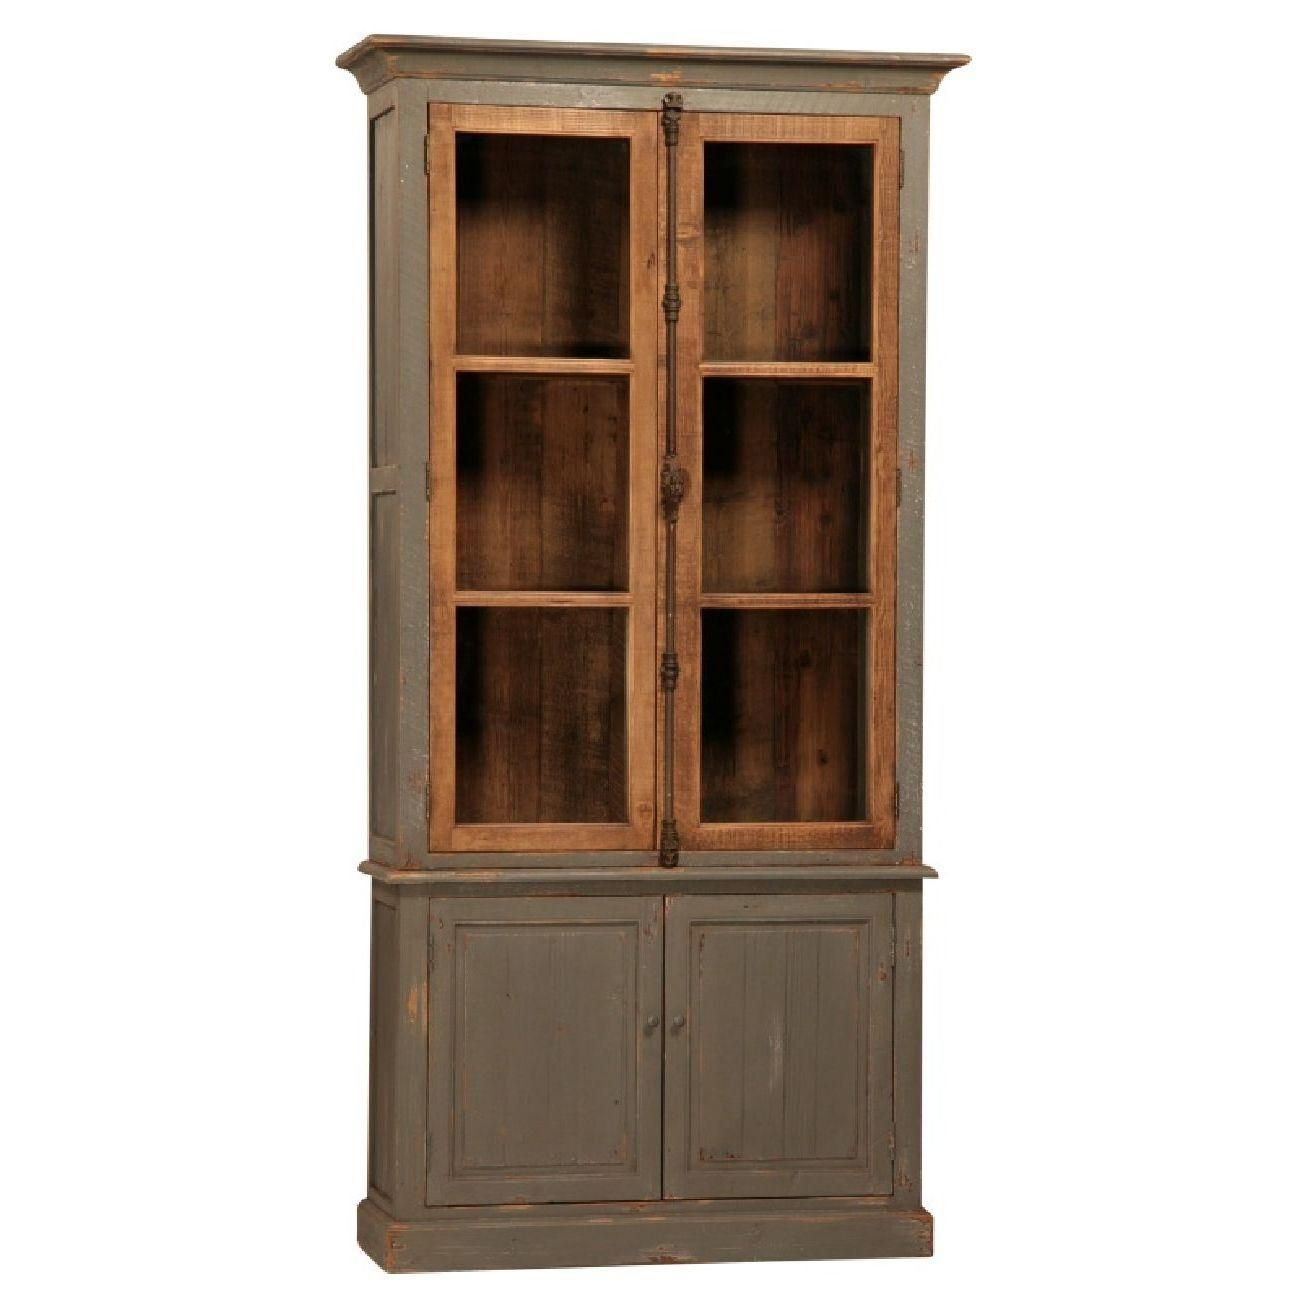 Four Door Two Piece Reclaimed Cabinet Fixed Shelves In Top Behind Gl Doors French Style Hardware Base Includes 1 Shelf Distressed Paint Finish